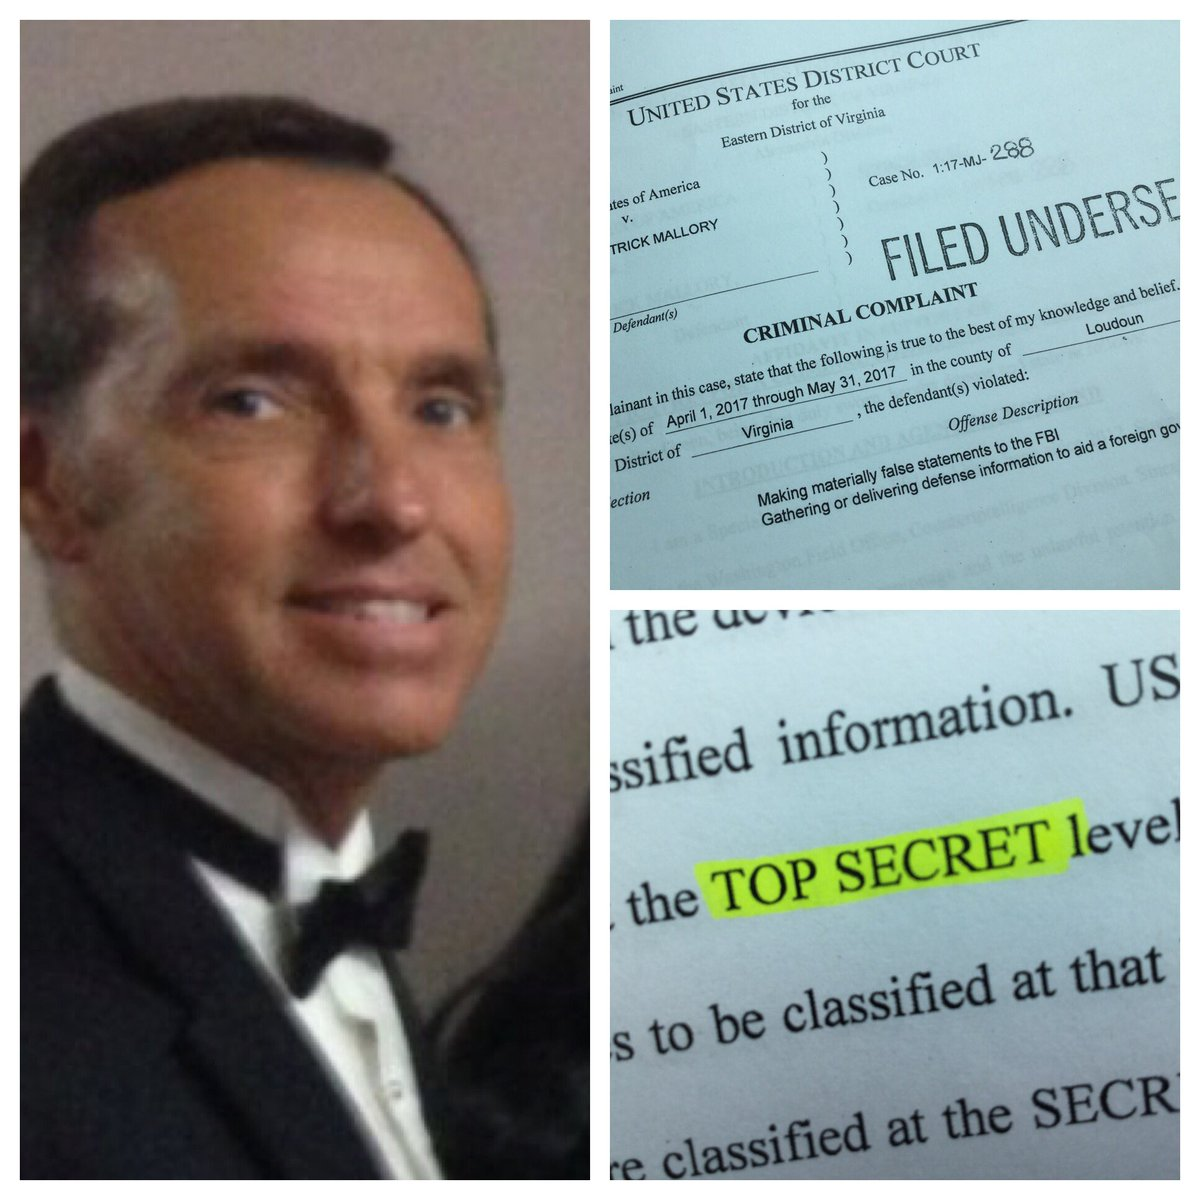 A former defense contractor from #Loudoun accused of selling government secrets to Chinese operatives.  Details #NBC4DC@6 @nbcwashington<br>http://pic.twitter.com/LReJwkwUV2